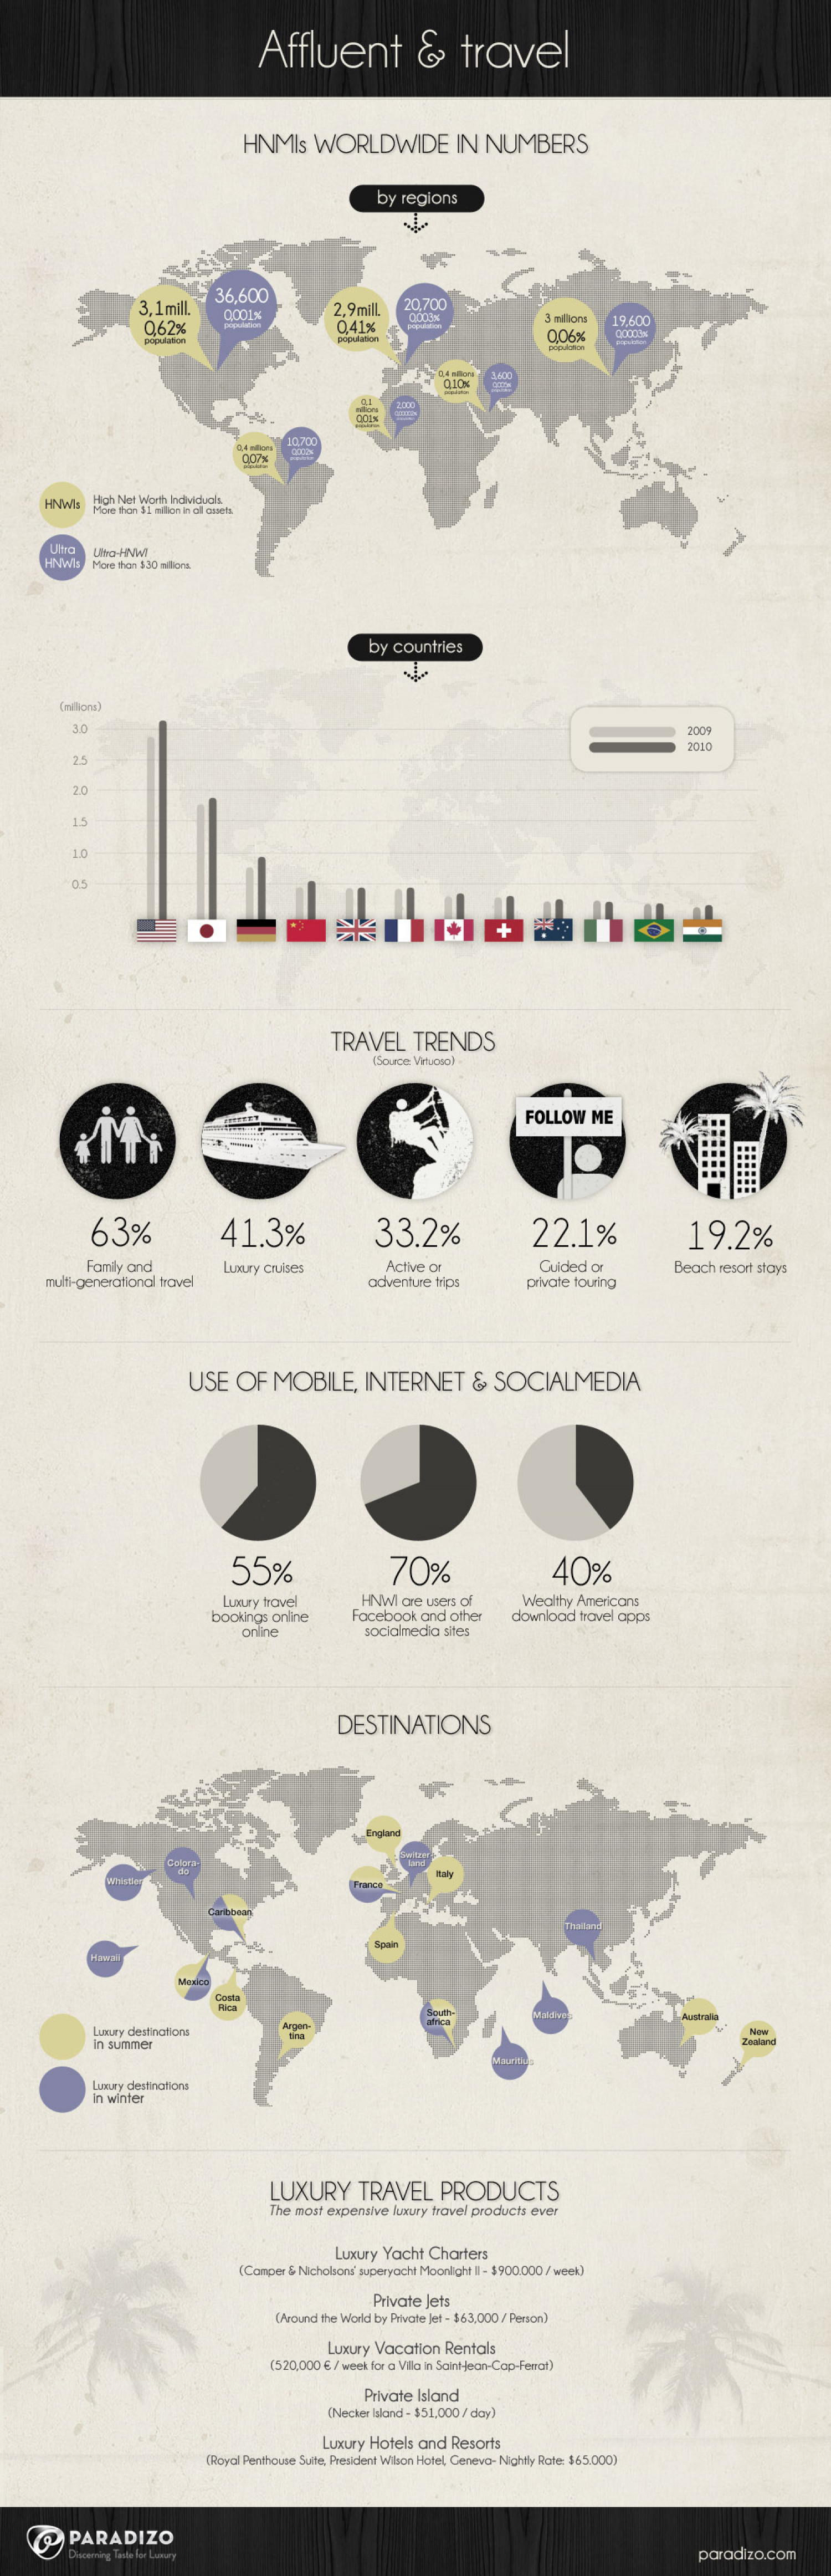 Affluent & Travel Infographic